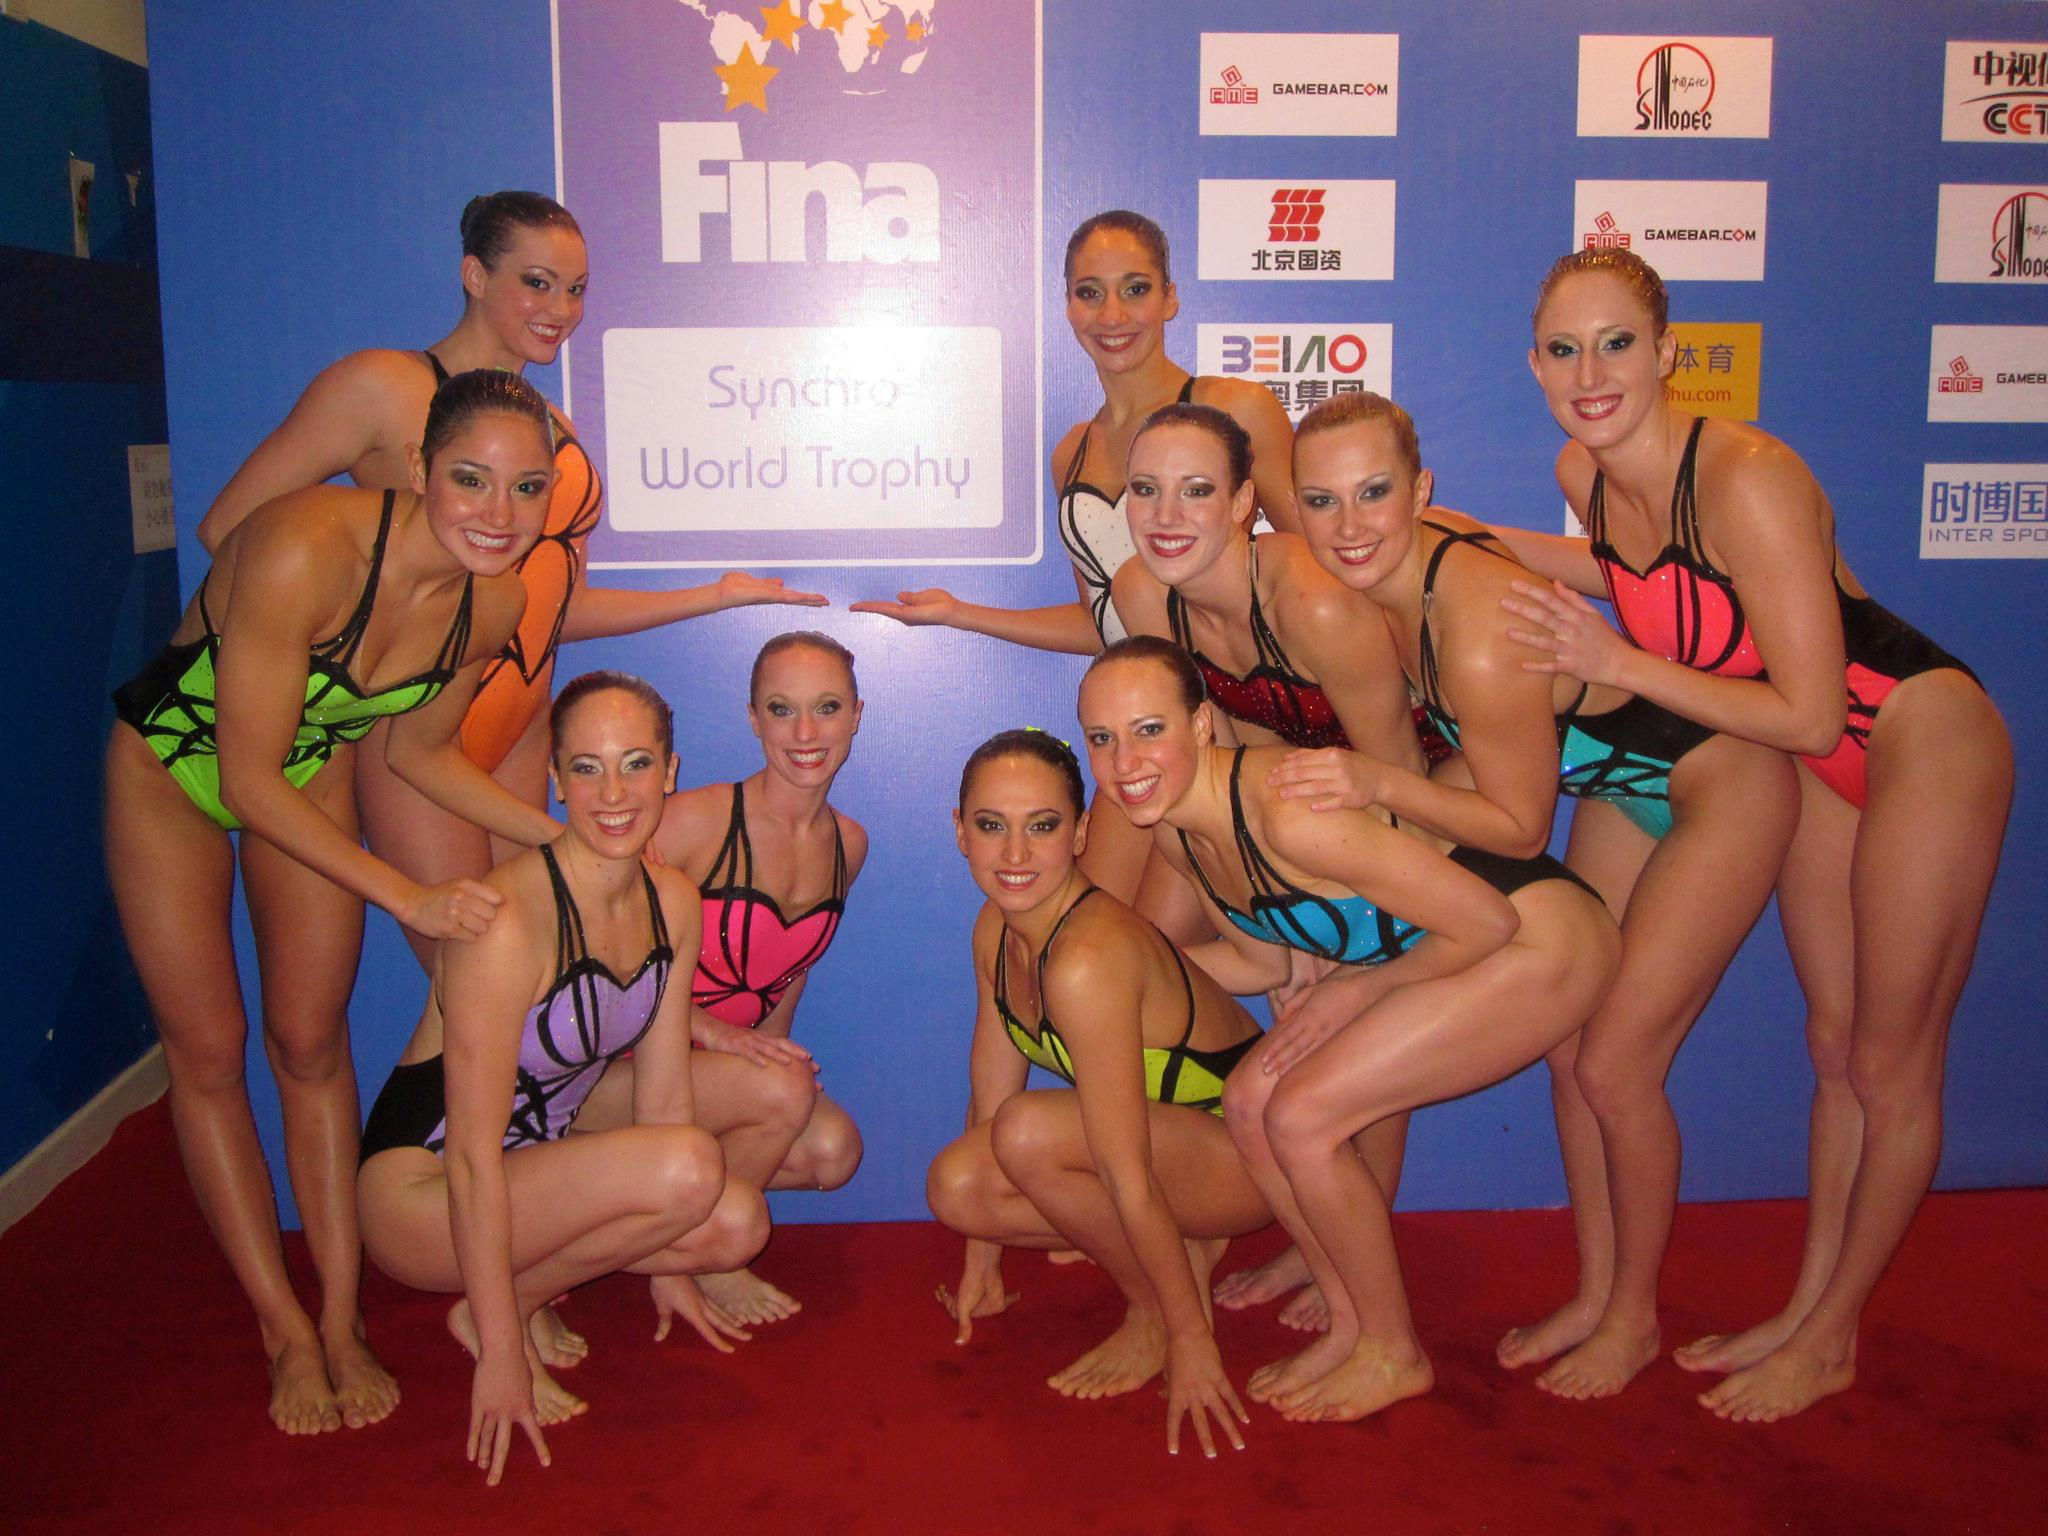 - After our combo swim at the 2011 World Trophy in Beijing.